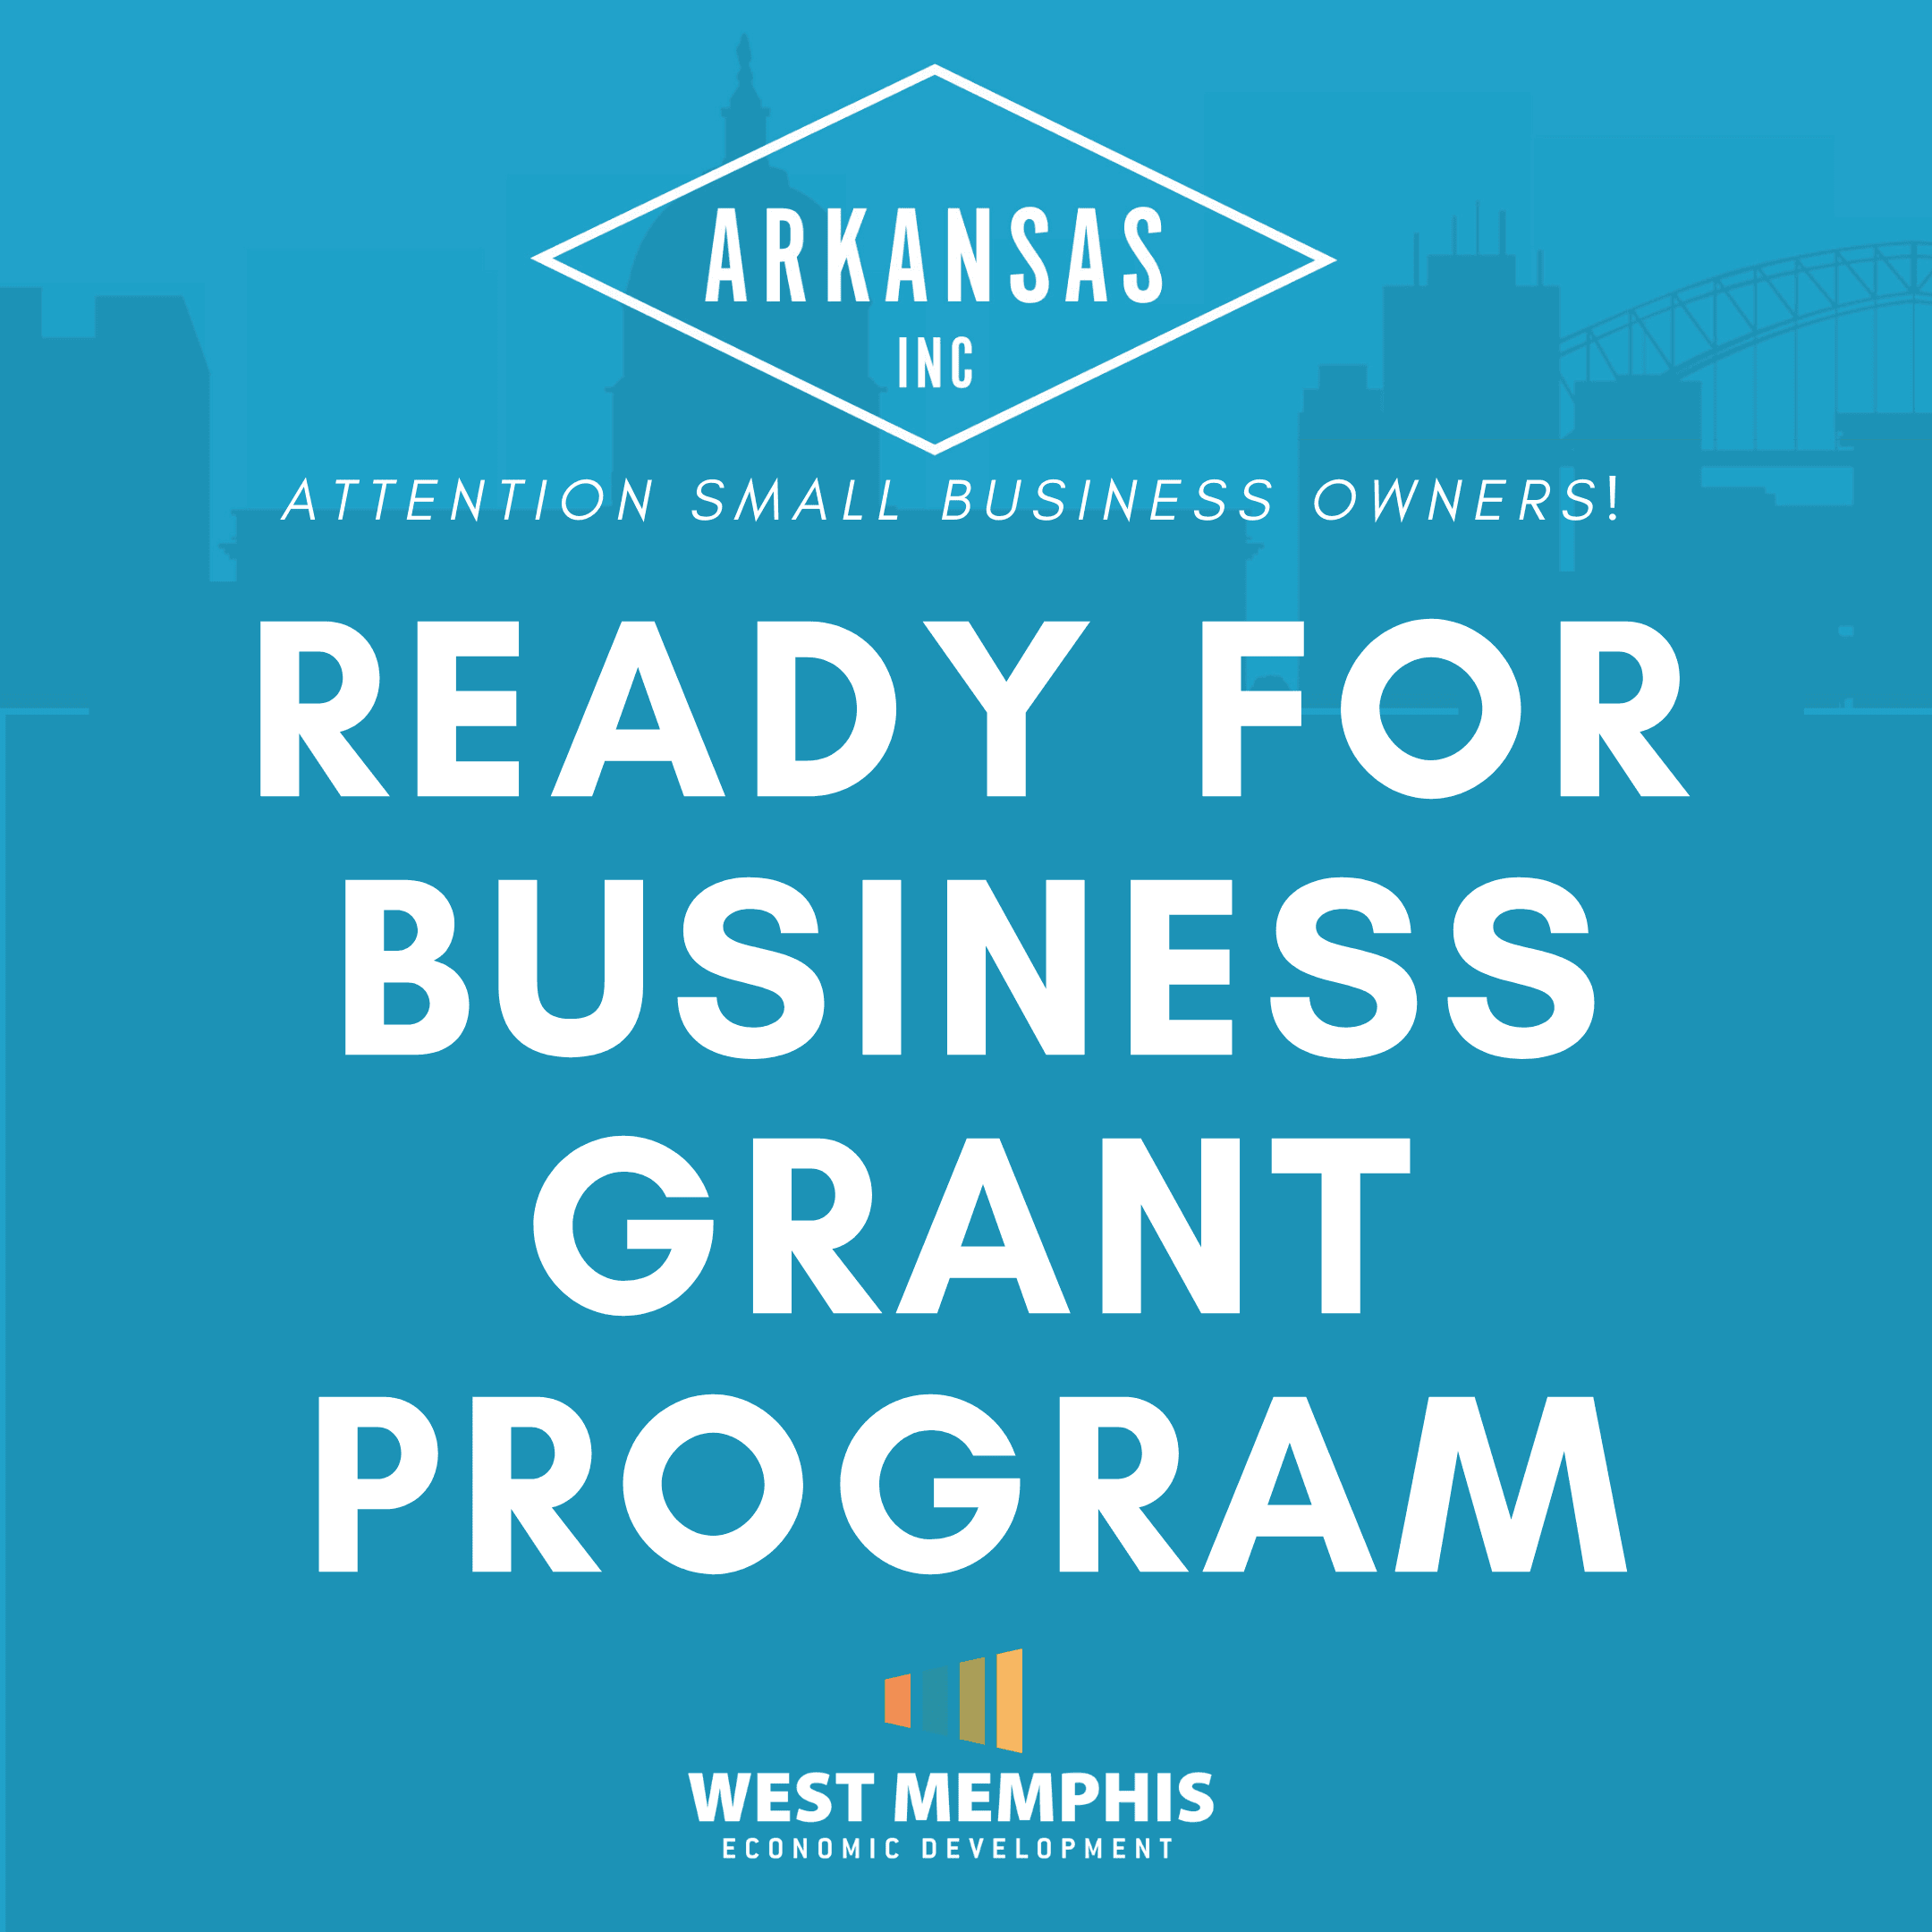 Arkansas Ready For Business Grant Program